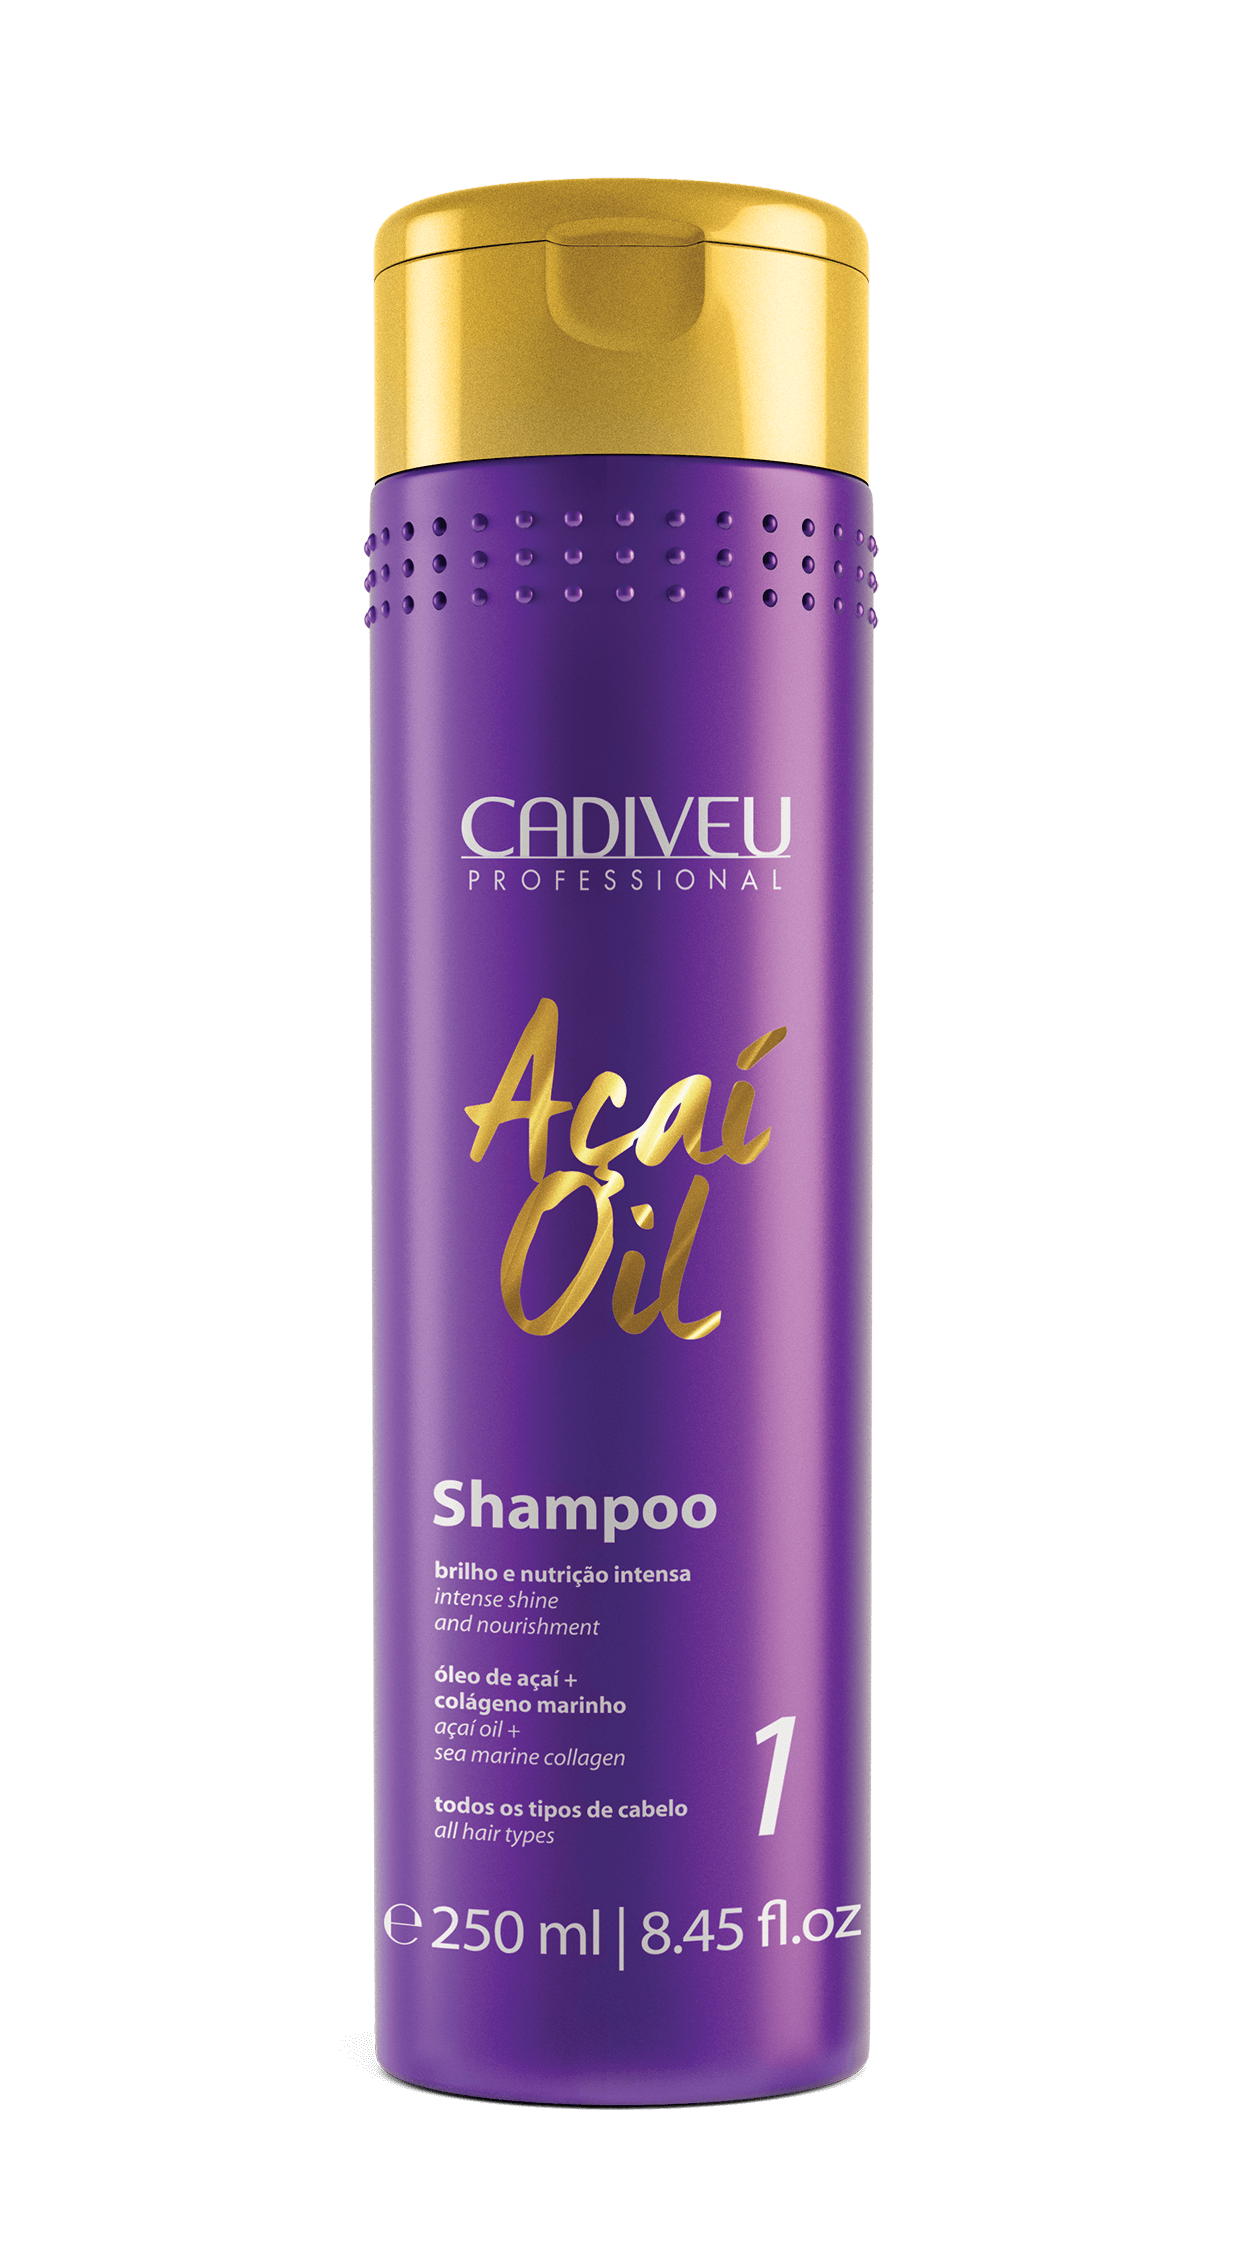 Açai Oil - Shampoo 250ml